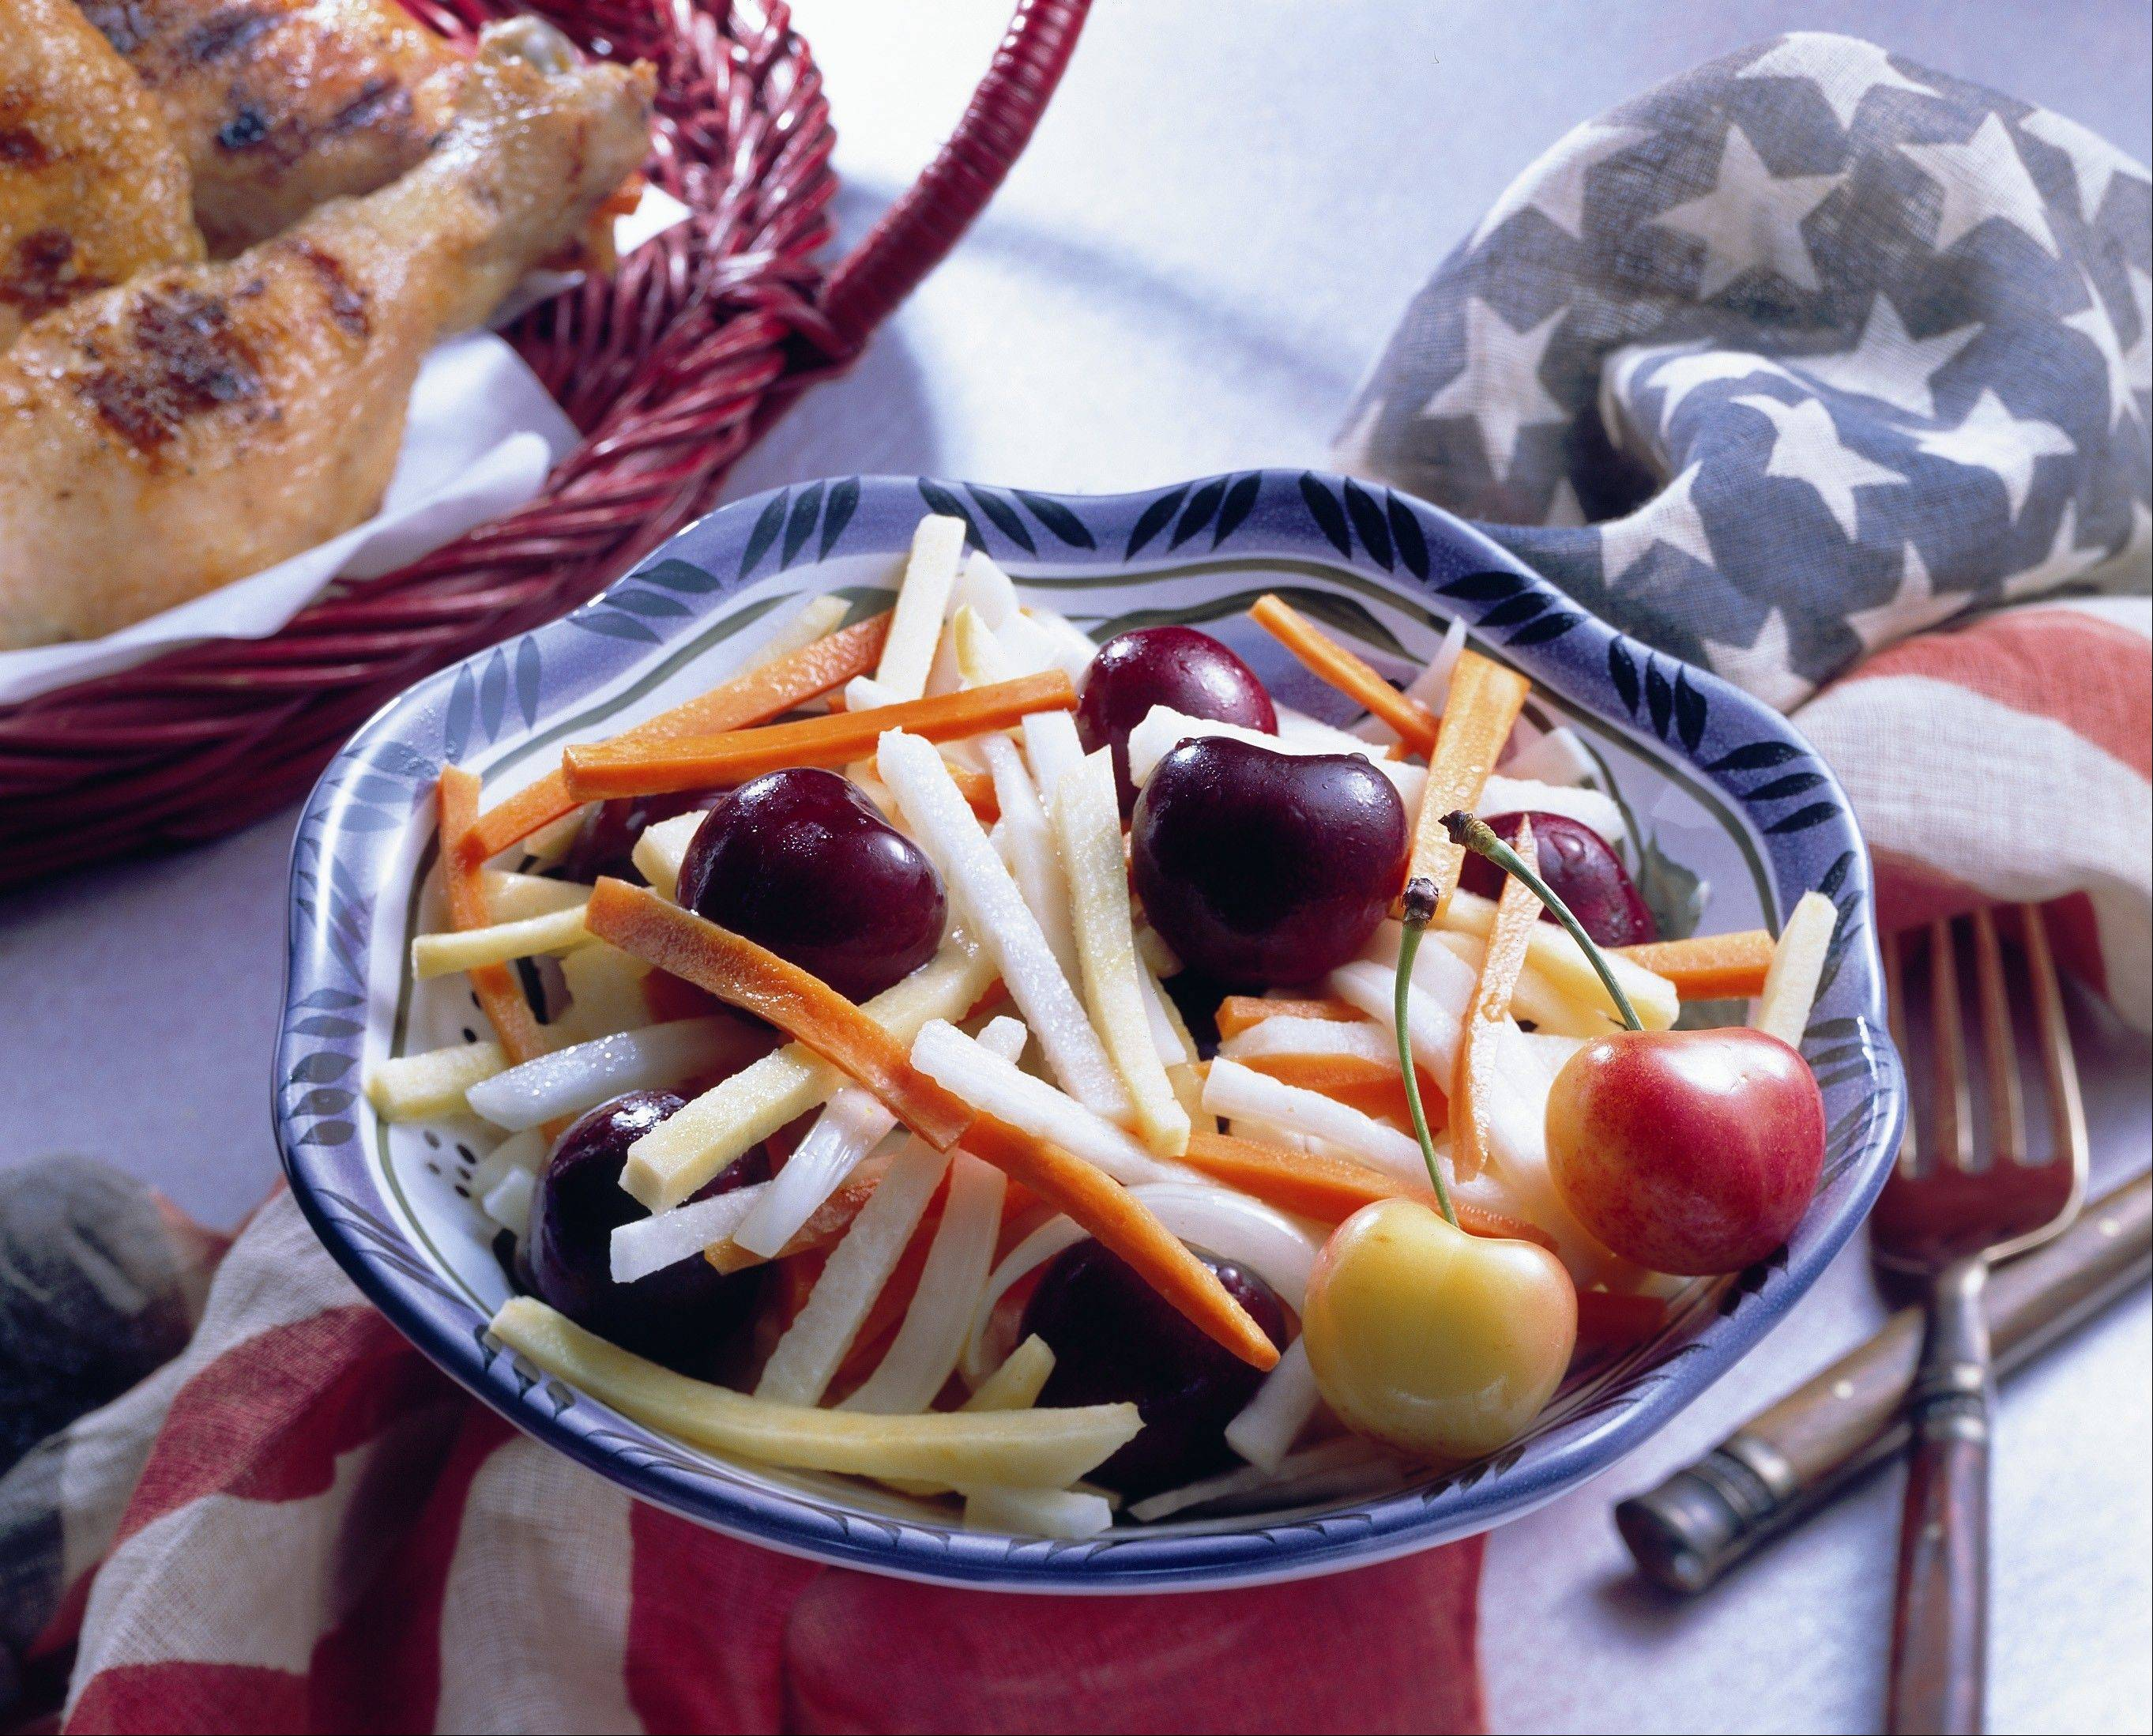 Fresh cherries brighten up a summer salad.